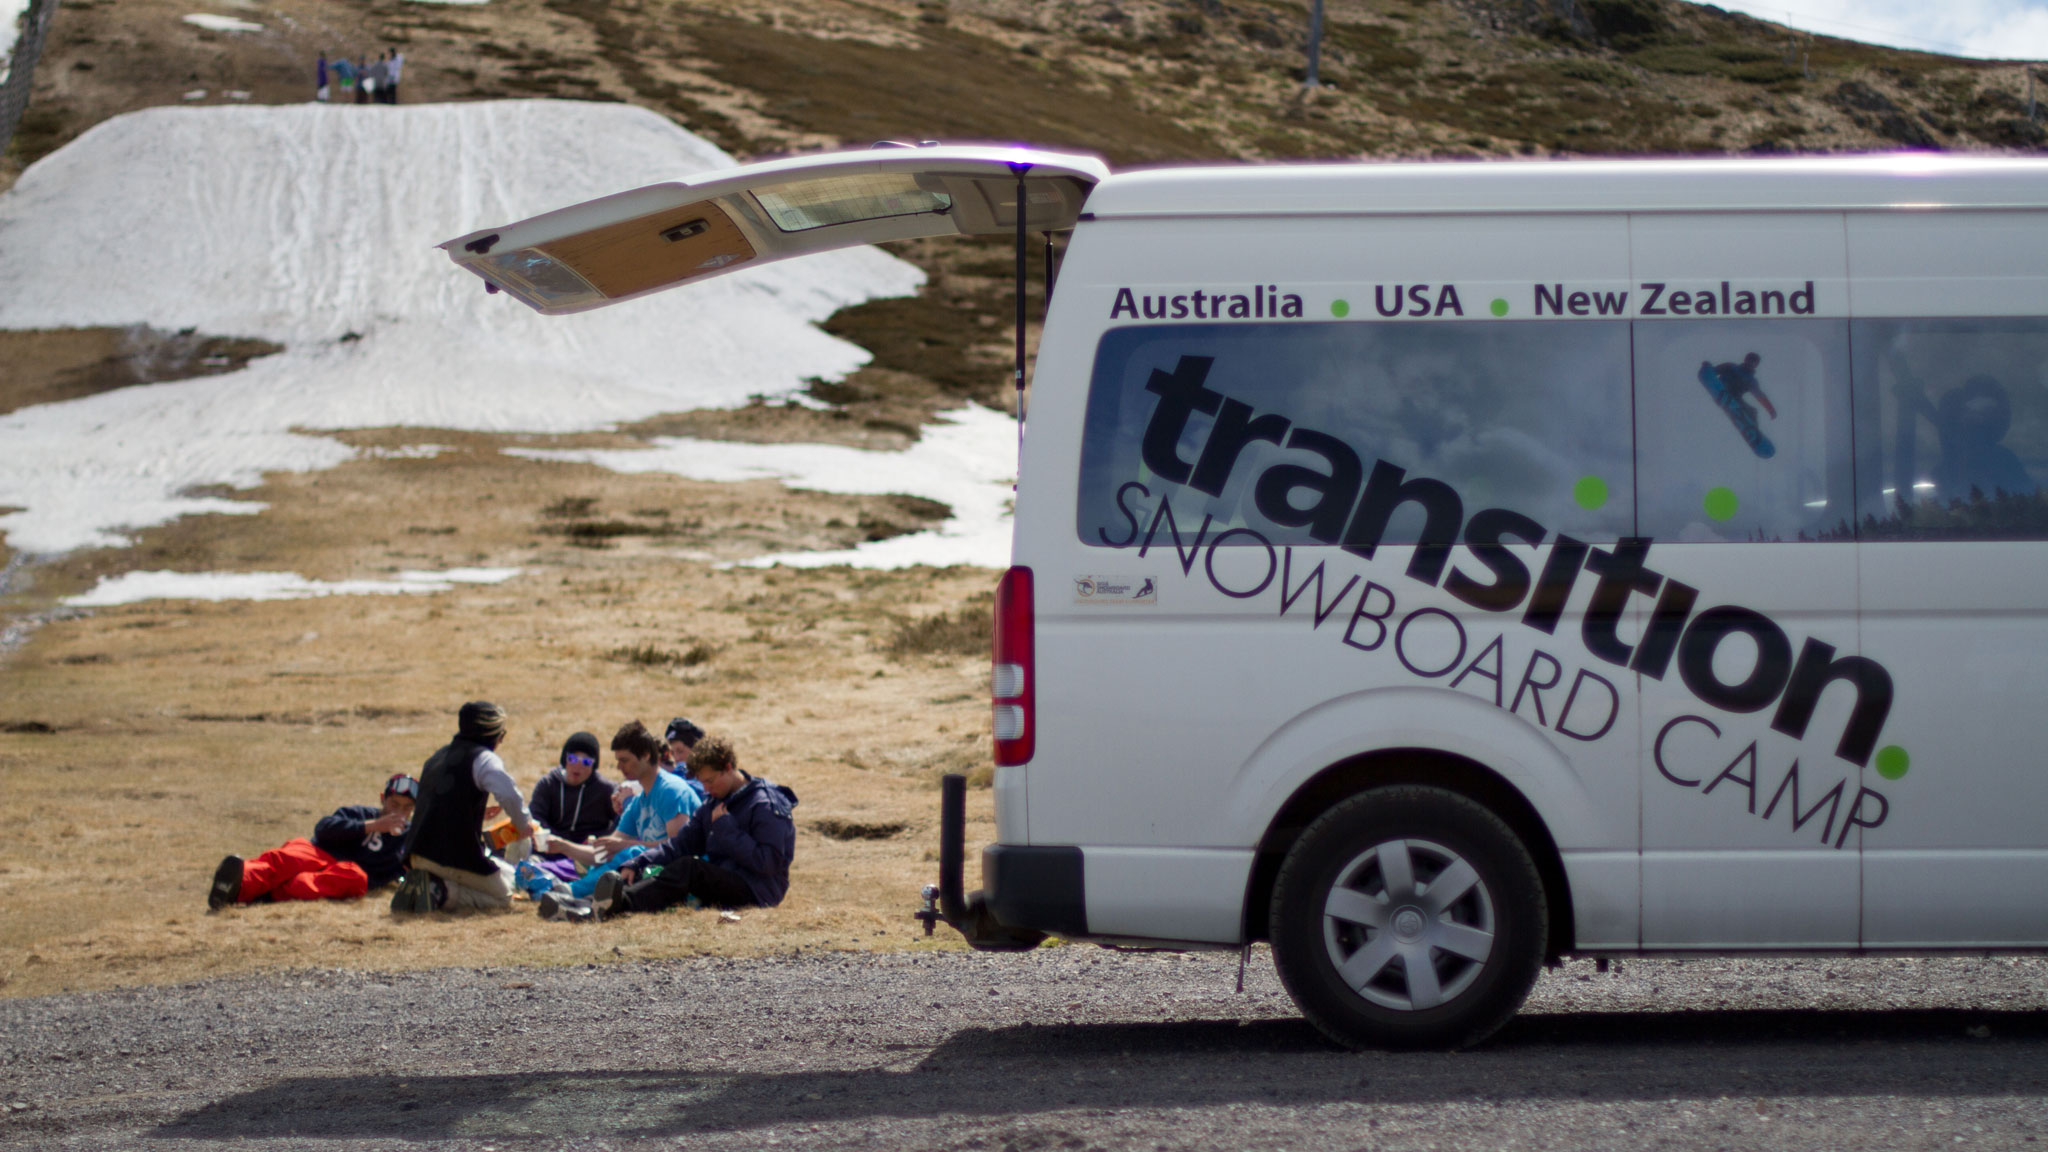 Transition Snowboard Camp, Australia